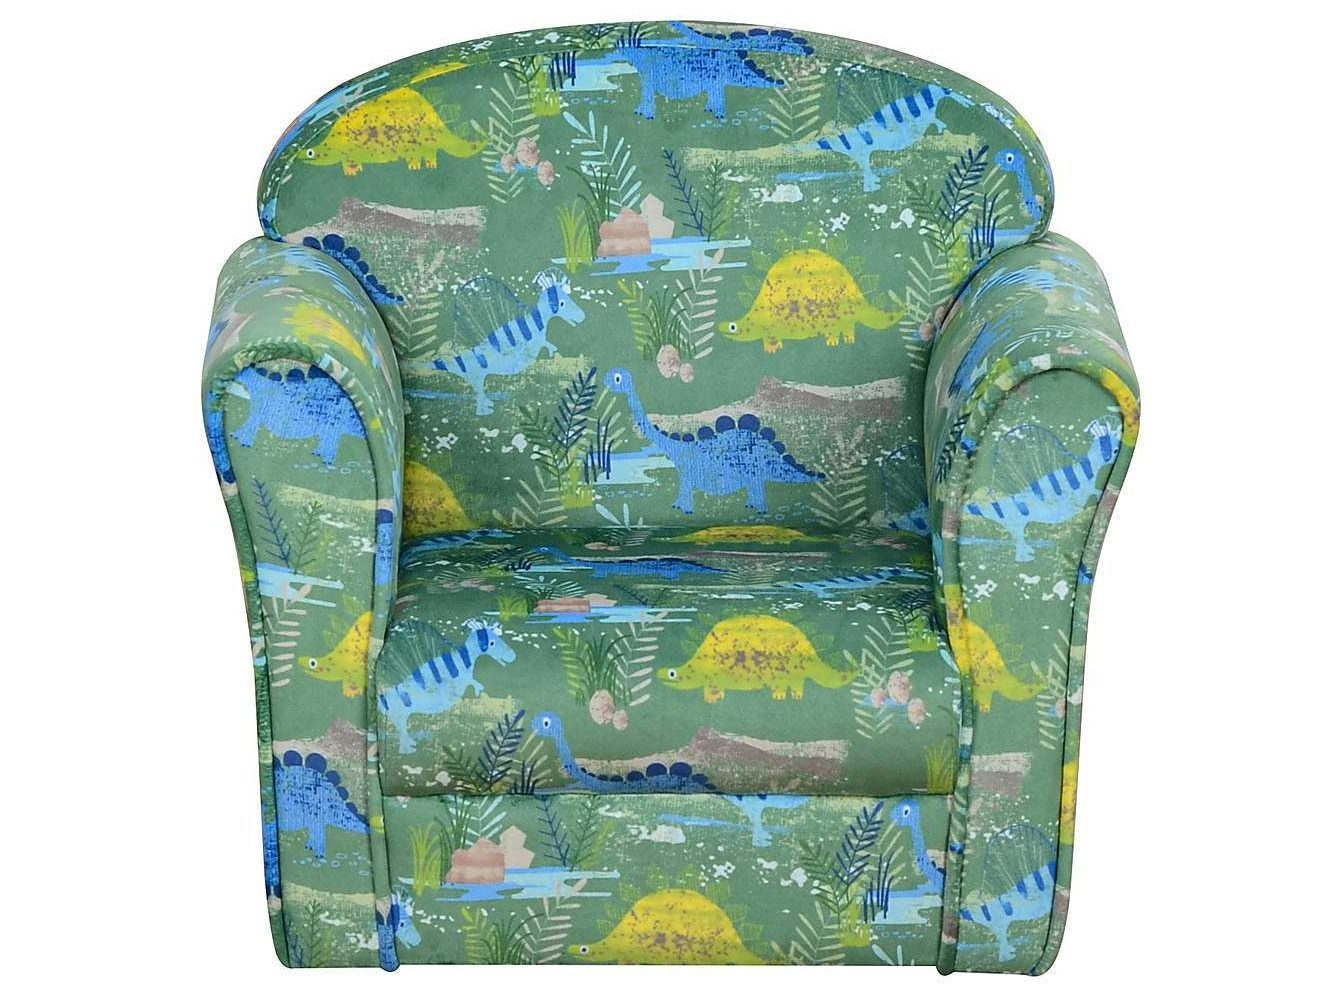 Dunelm is selling a kids armchair featuring colourful dinosaurs